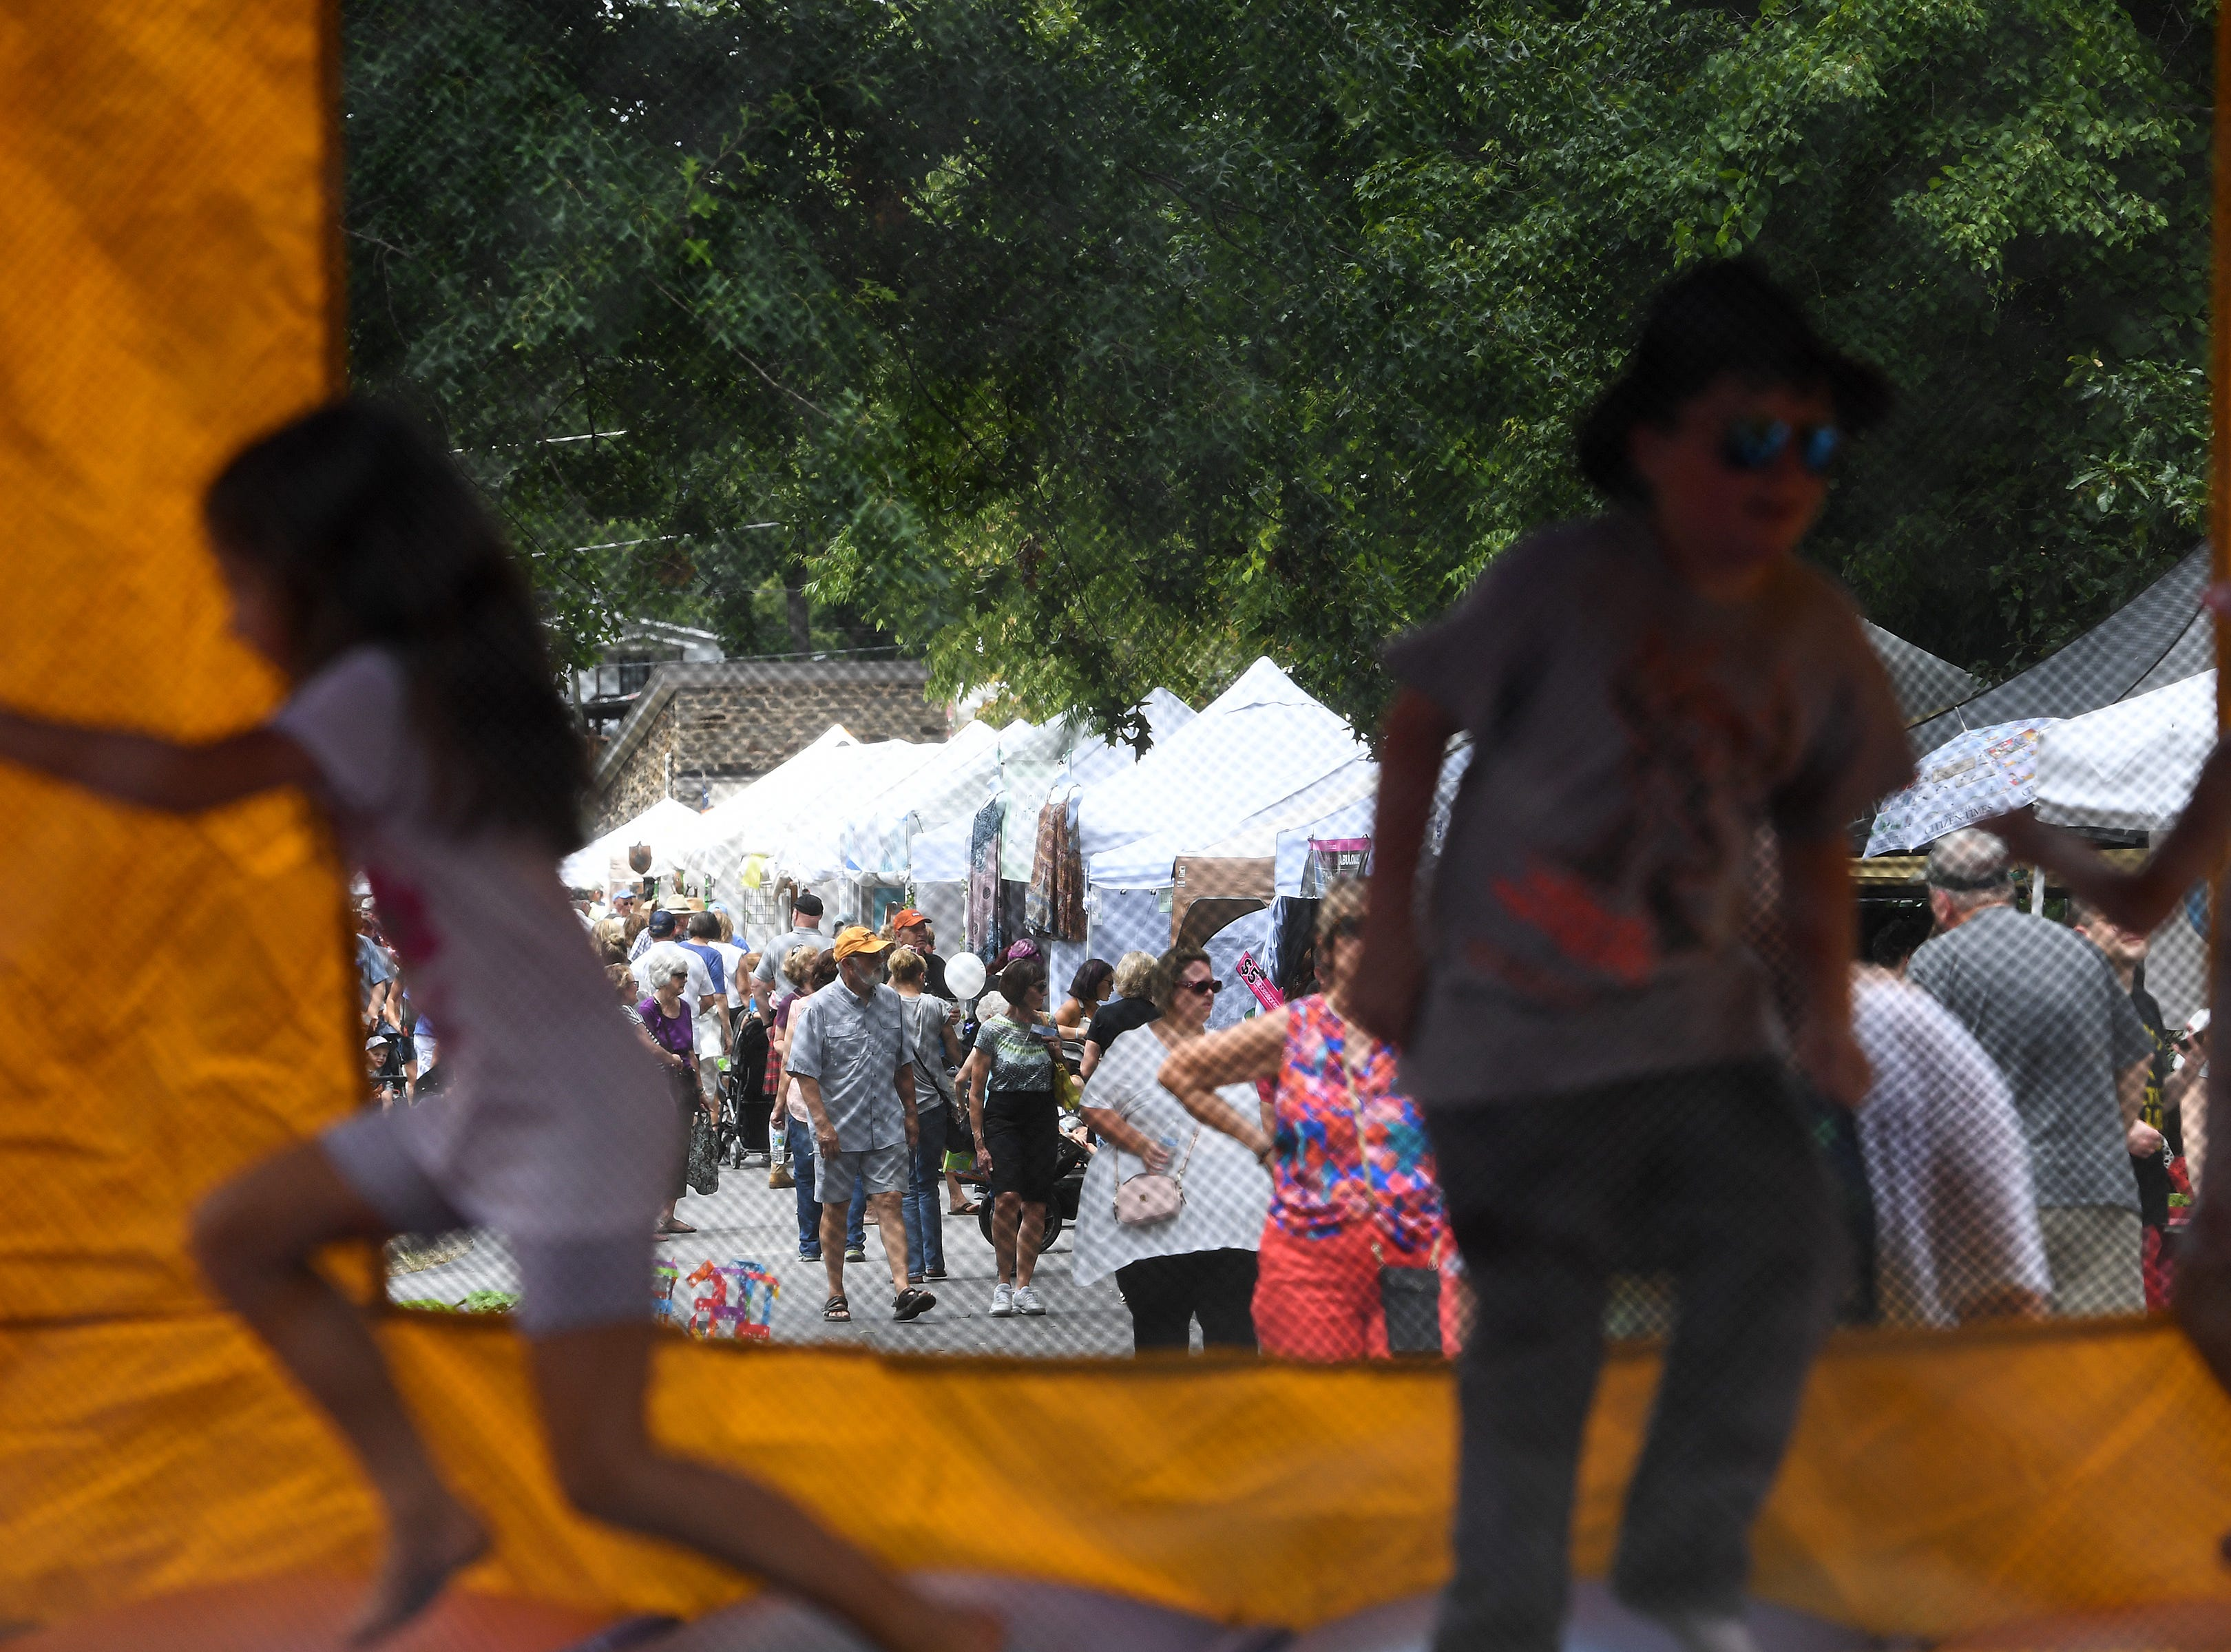 Children play in a bounce house as festival-goers shop various tents during the 41st annual Sourwood Festival in Black Mountain on Saturday, Aug. 11, 2018.